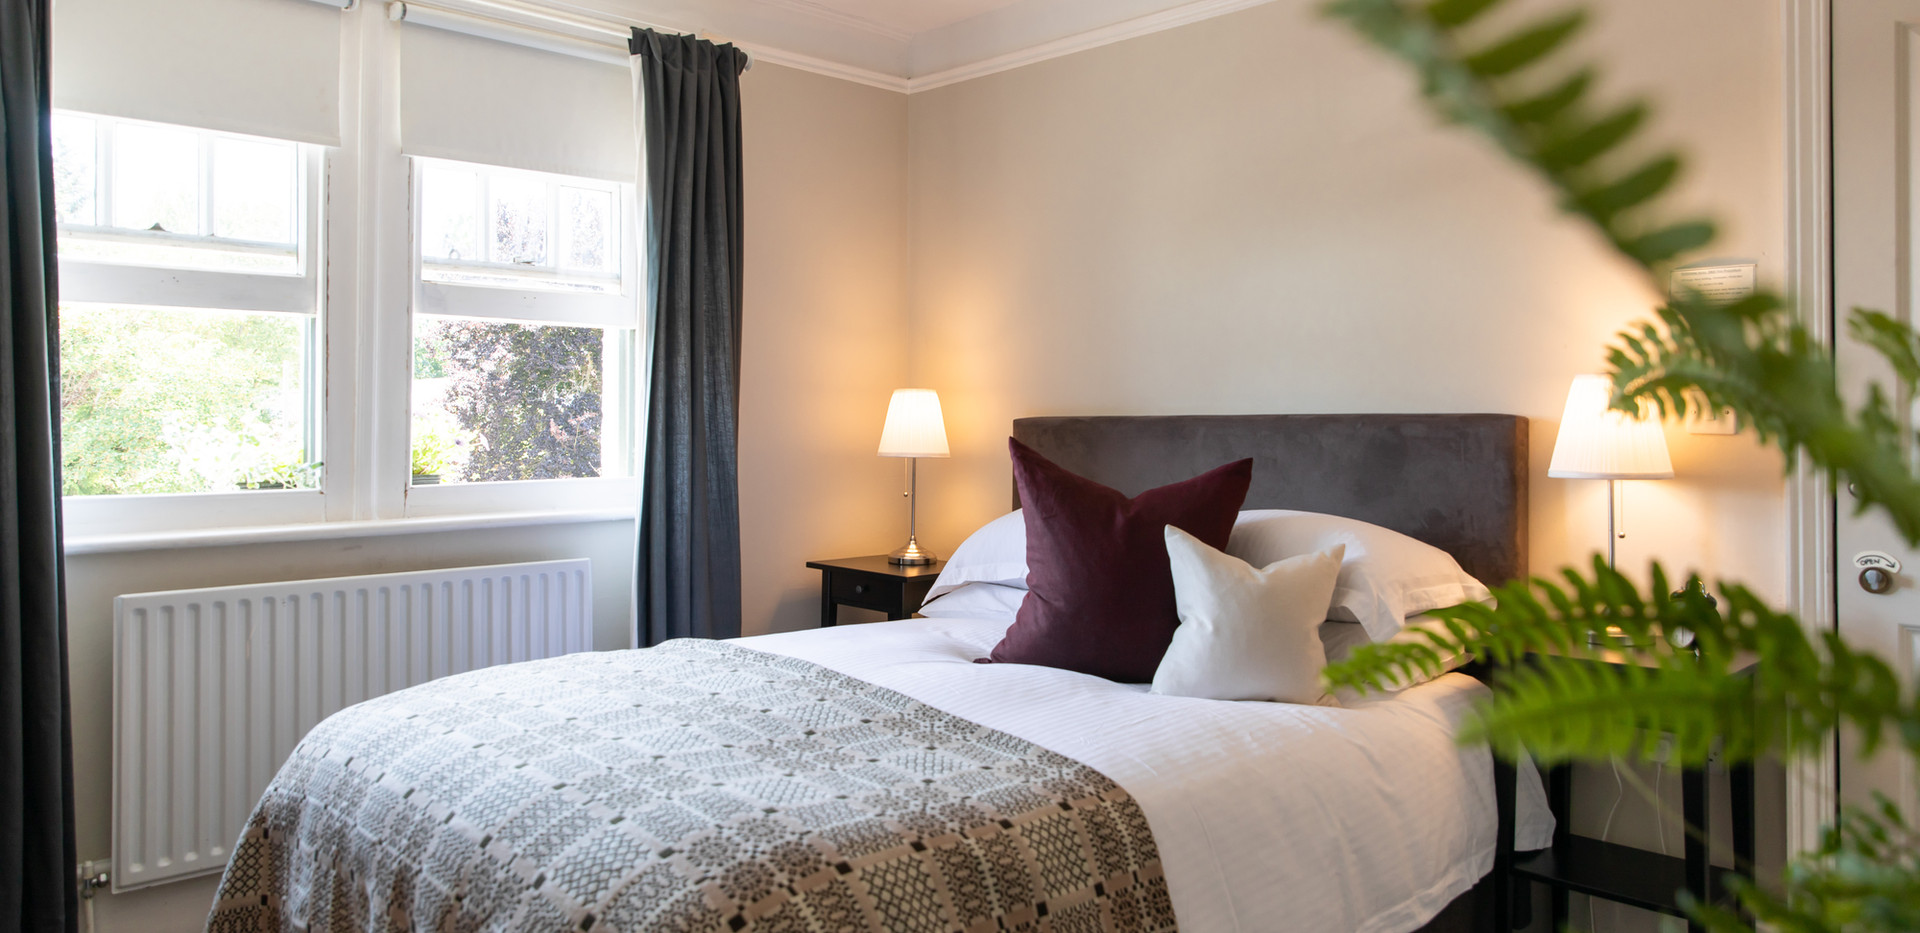 The Richmond Arms Bed and Breakfast near Chichester, West Sussex